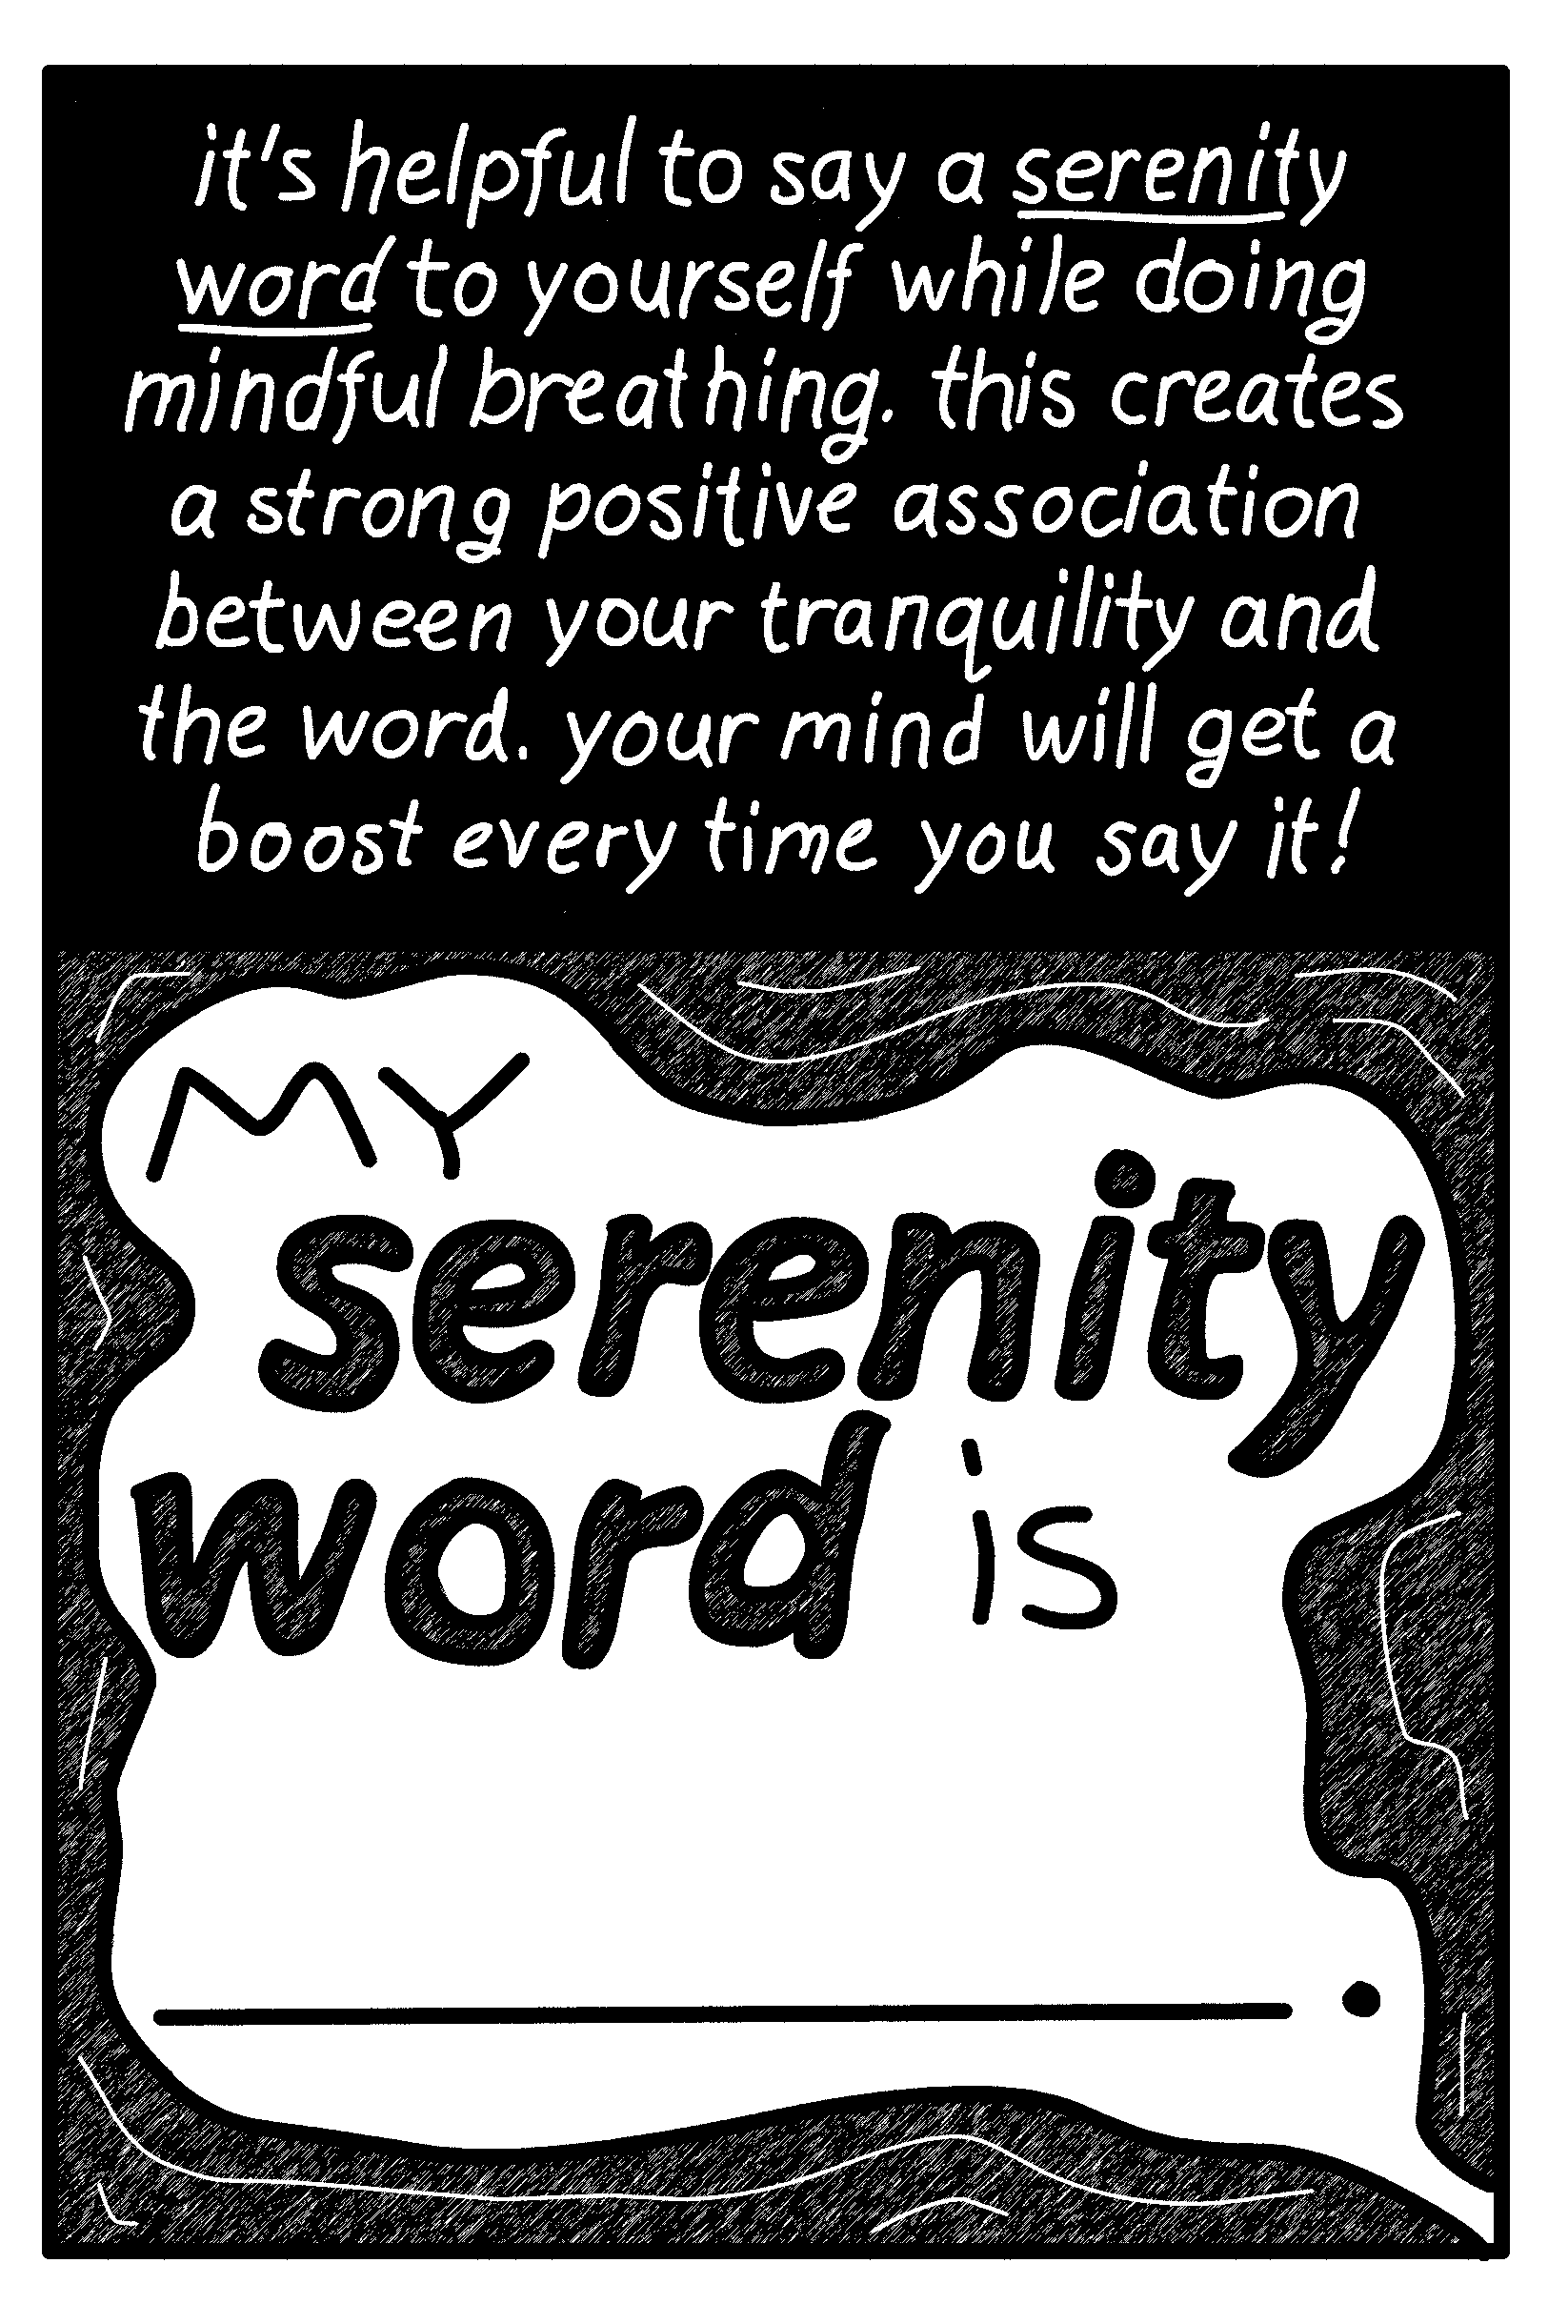 page 5bw.png